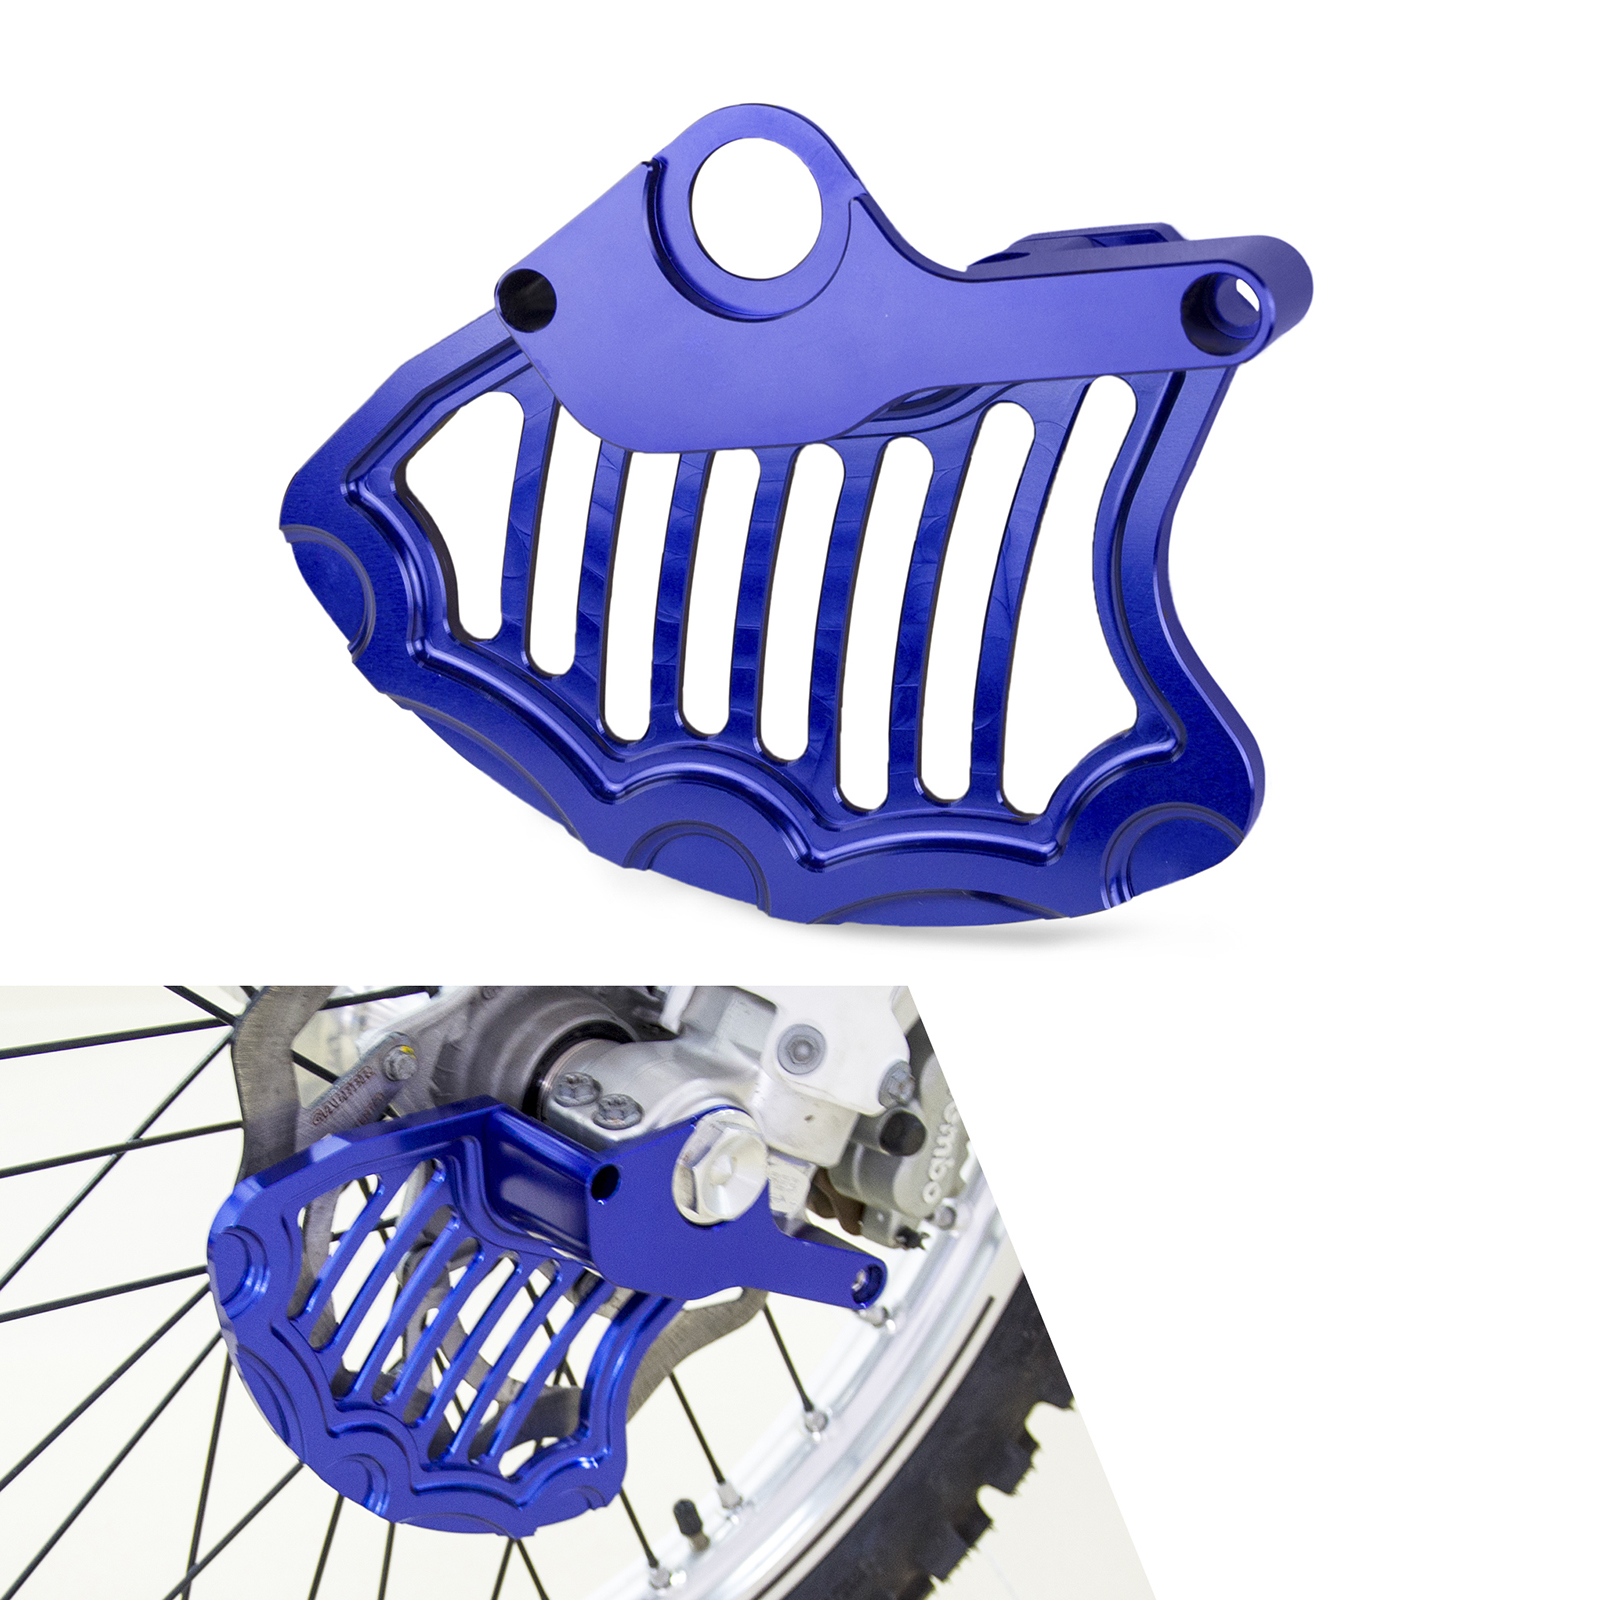 NICECNC CNC Front Brake Disc Guard Cover For Husqvarna TE TC TX FE FC FX FS 125 150 200 250 300 350 390 400 450 501 Husaberg 570 motorcycle front rider seat leather cover for ktm 125 200 390 duke